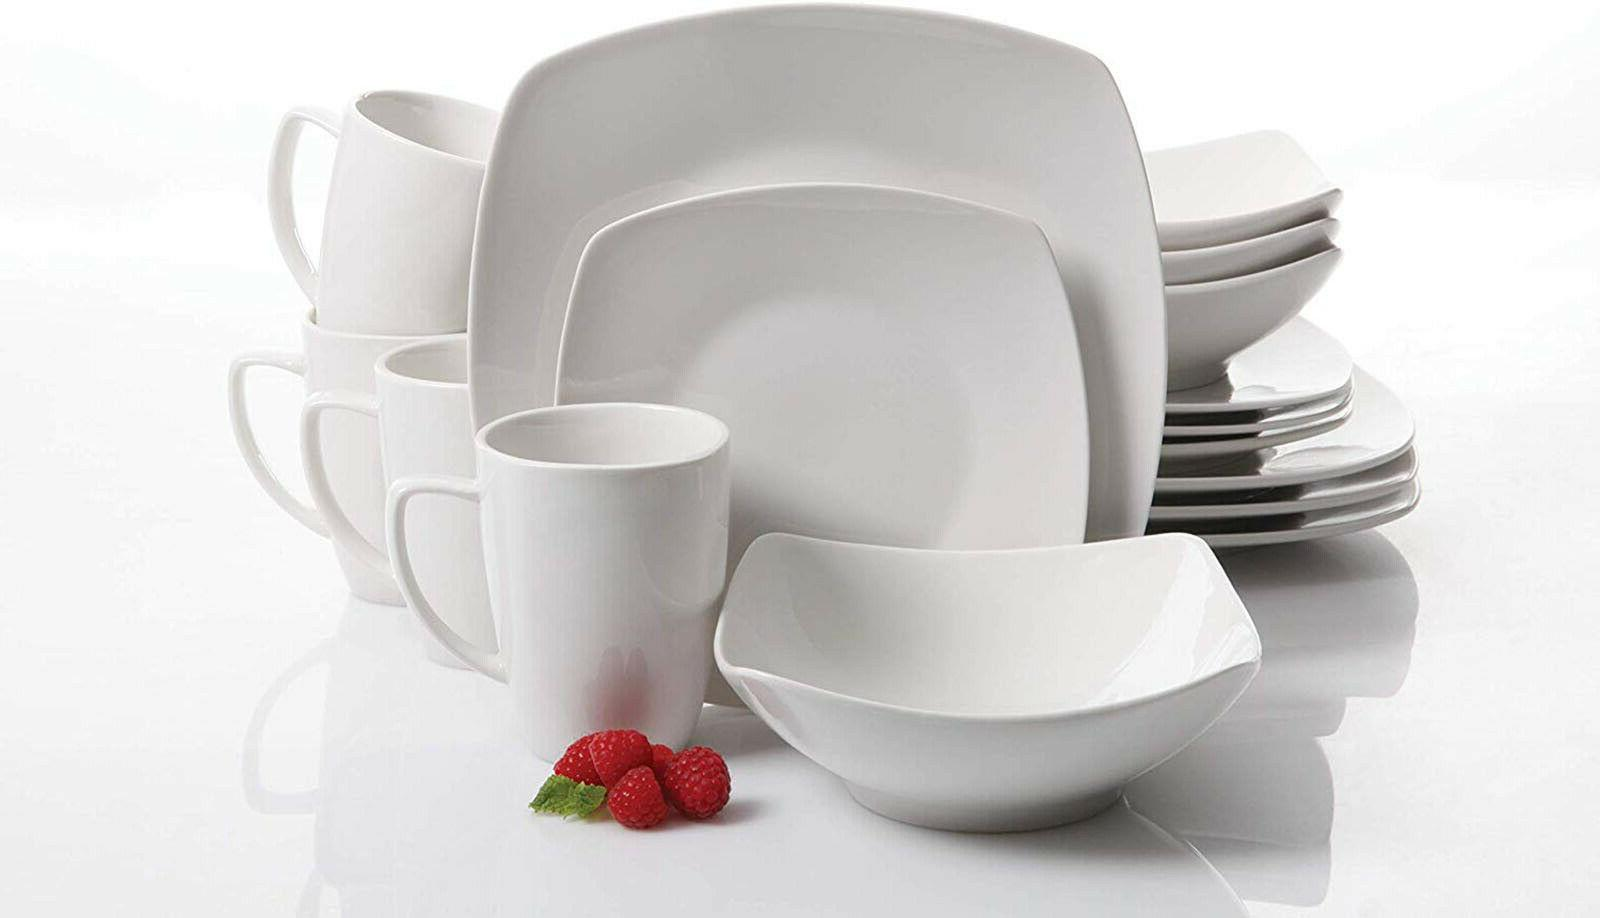 16 Piece Porcelain Dinnerware Set White Square Dinner Plates